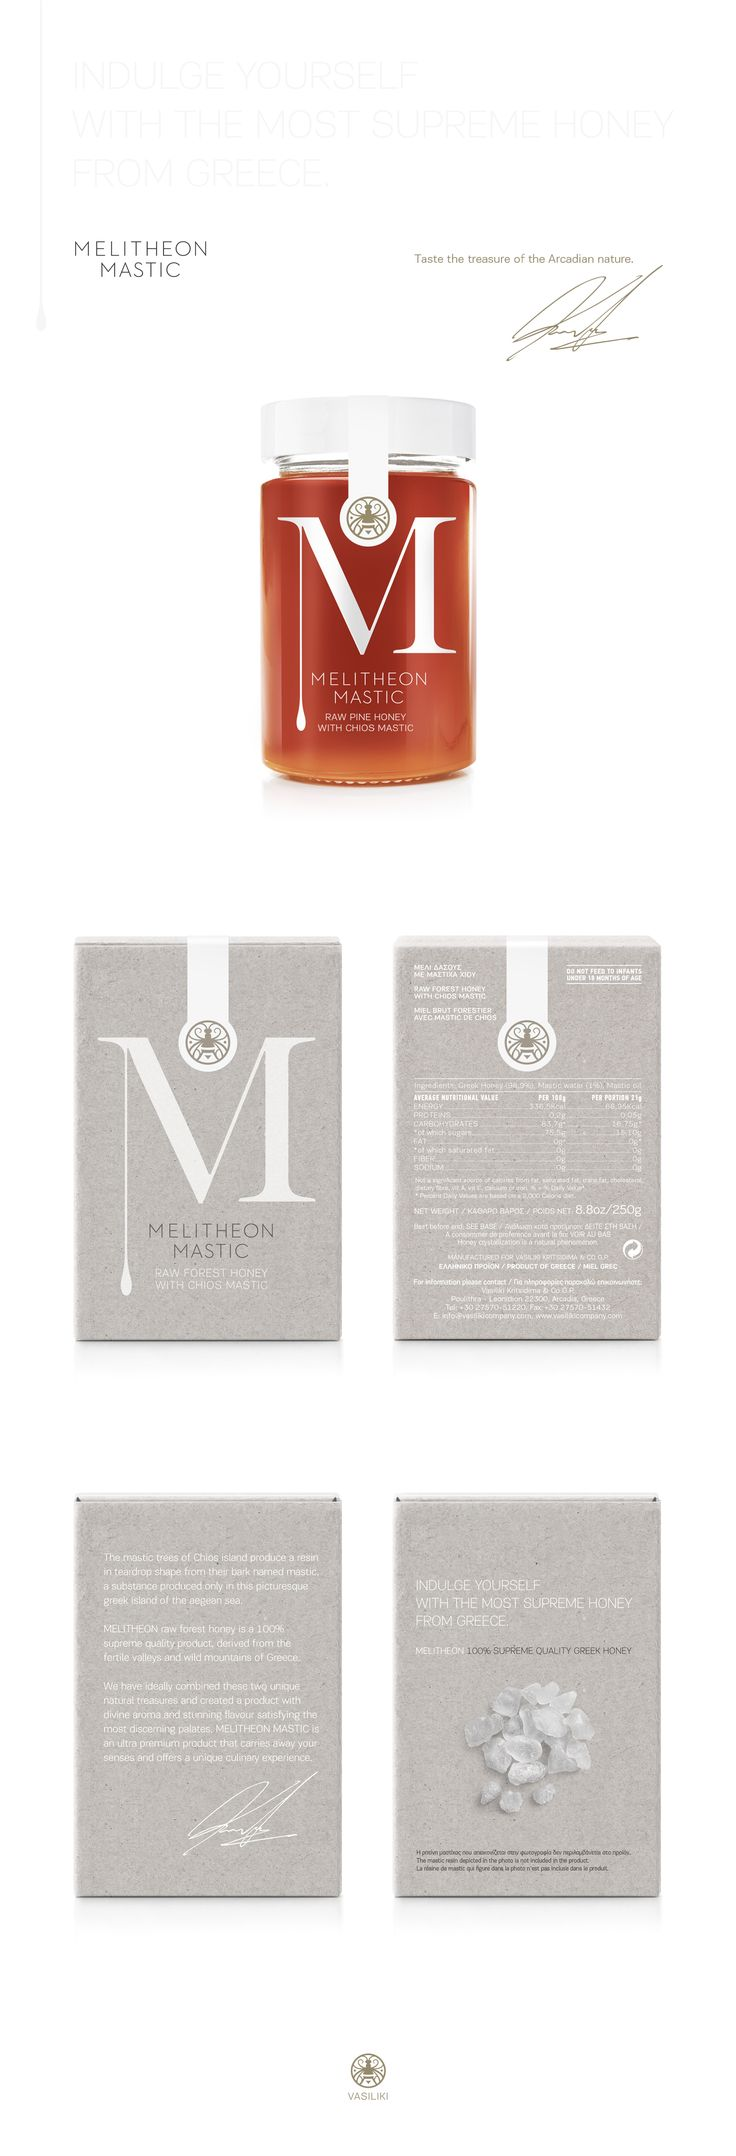 "Check out this @Behance project: ""Melitheon Mastic Honey"" https://www.behance.net/gallery/53590307/Melitheon-Mastic-Honey"